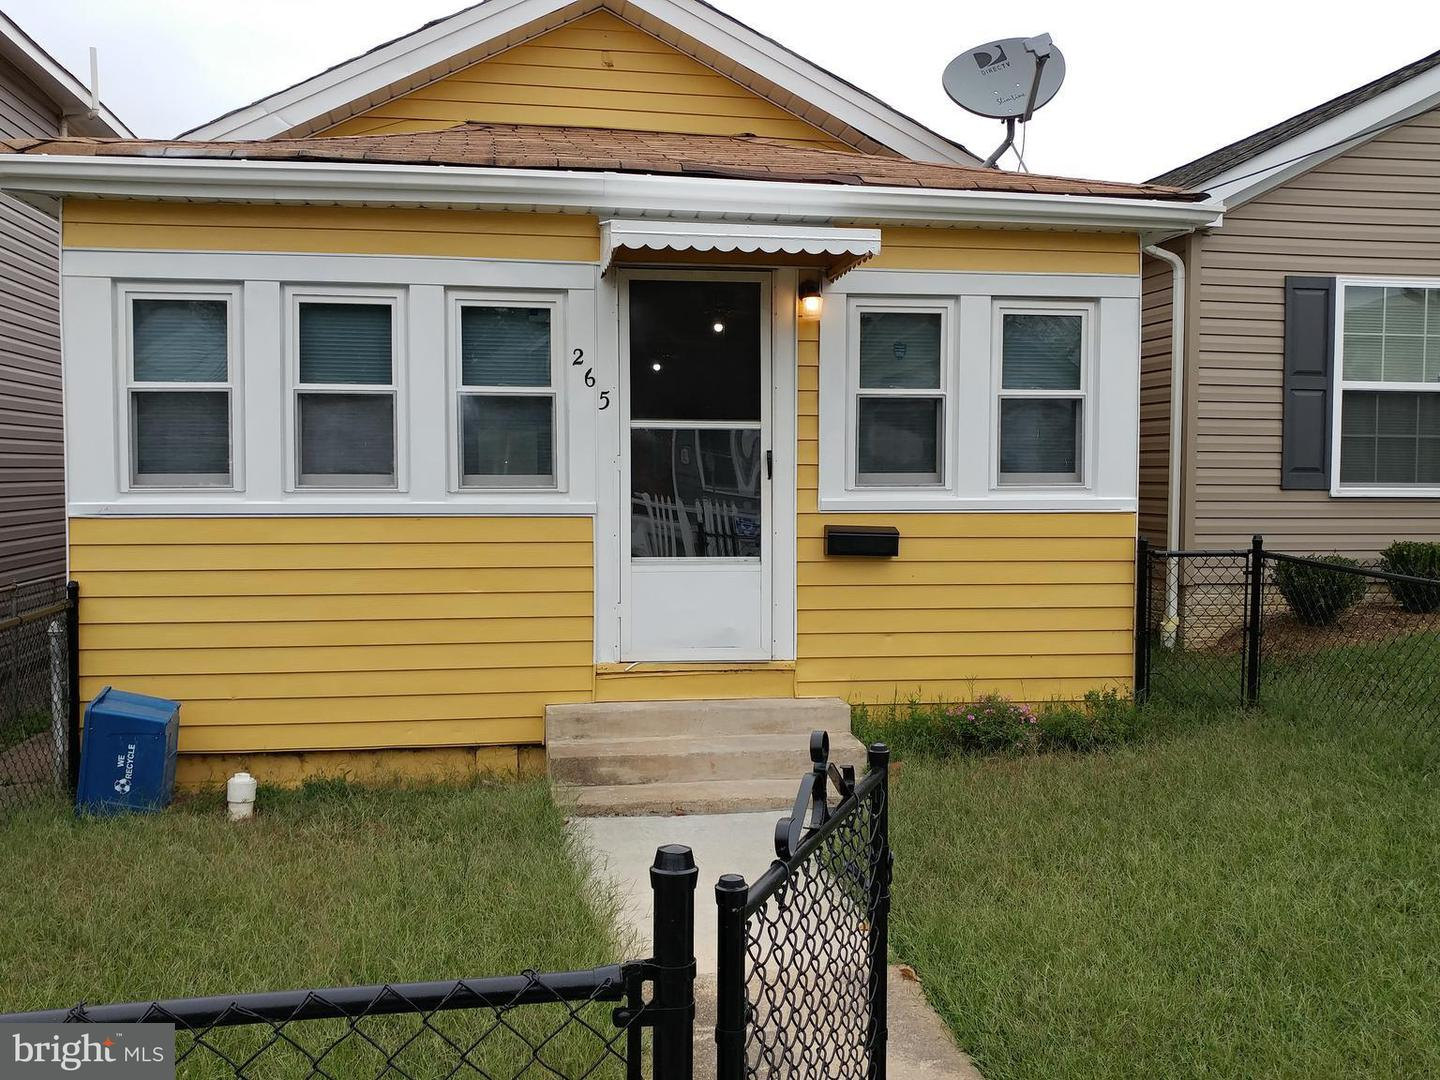 Other Residential for Rent at 265 4th Ave Quantico, Virginia 22134 United States